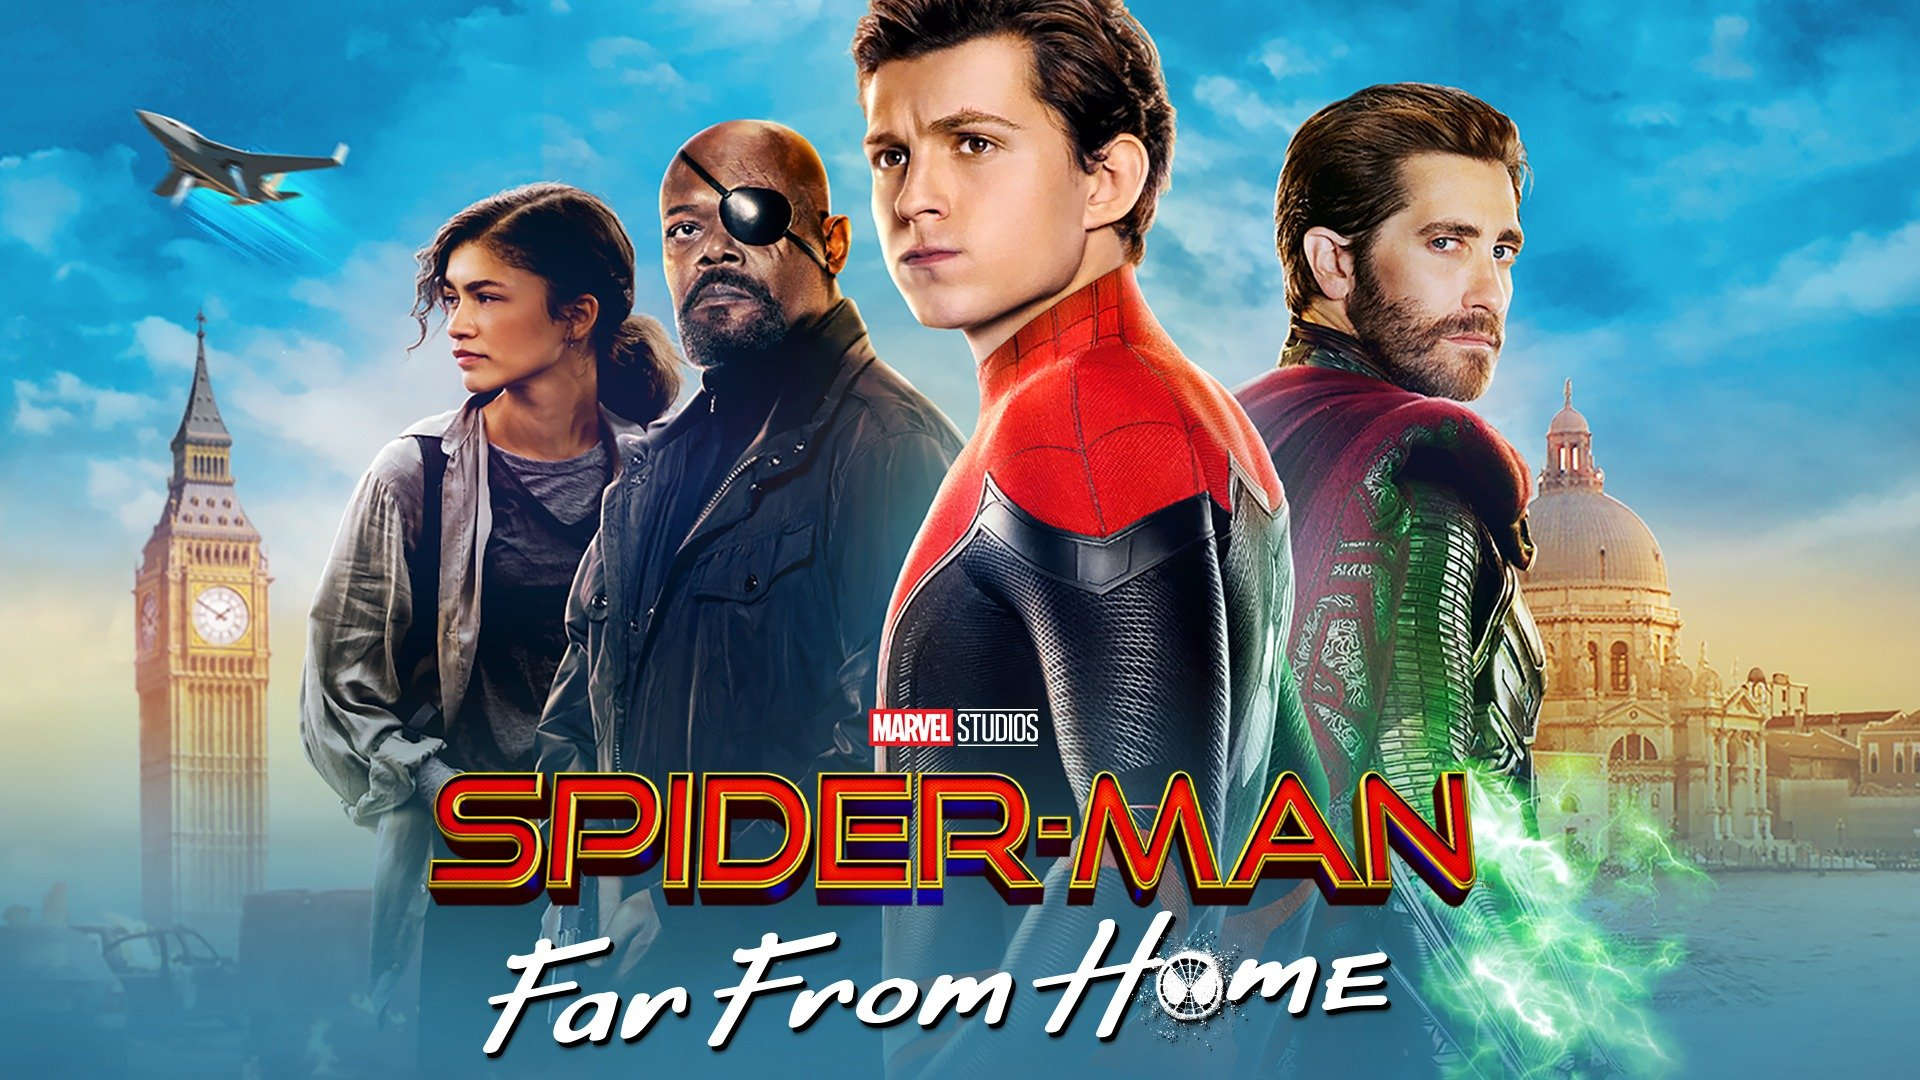 Spider-Man: Far From Home Audience Reviews | Flixster